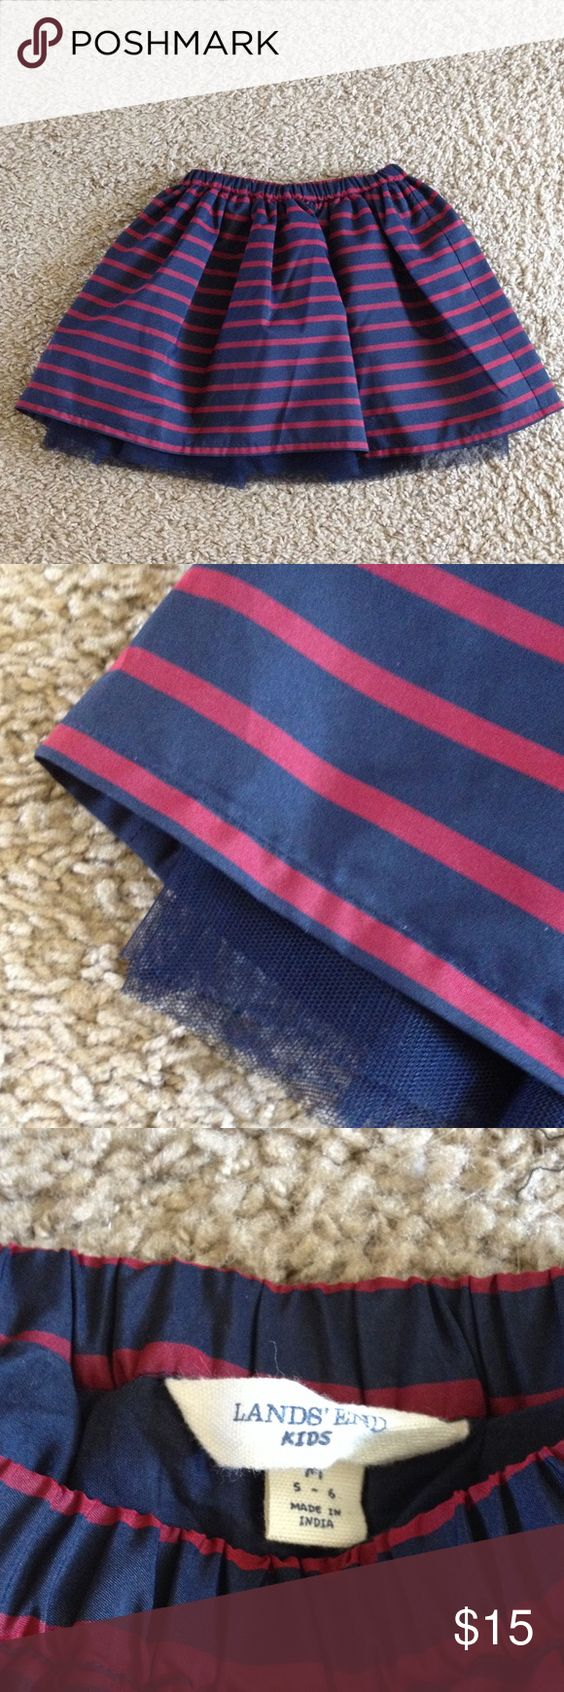 Lands End Kids skirt Navy and dark red striped Lands End Kids skirt.  Size 5-6.  Super cute tulle layer.  Great condition. Lands' End Bottoms Skirts